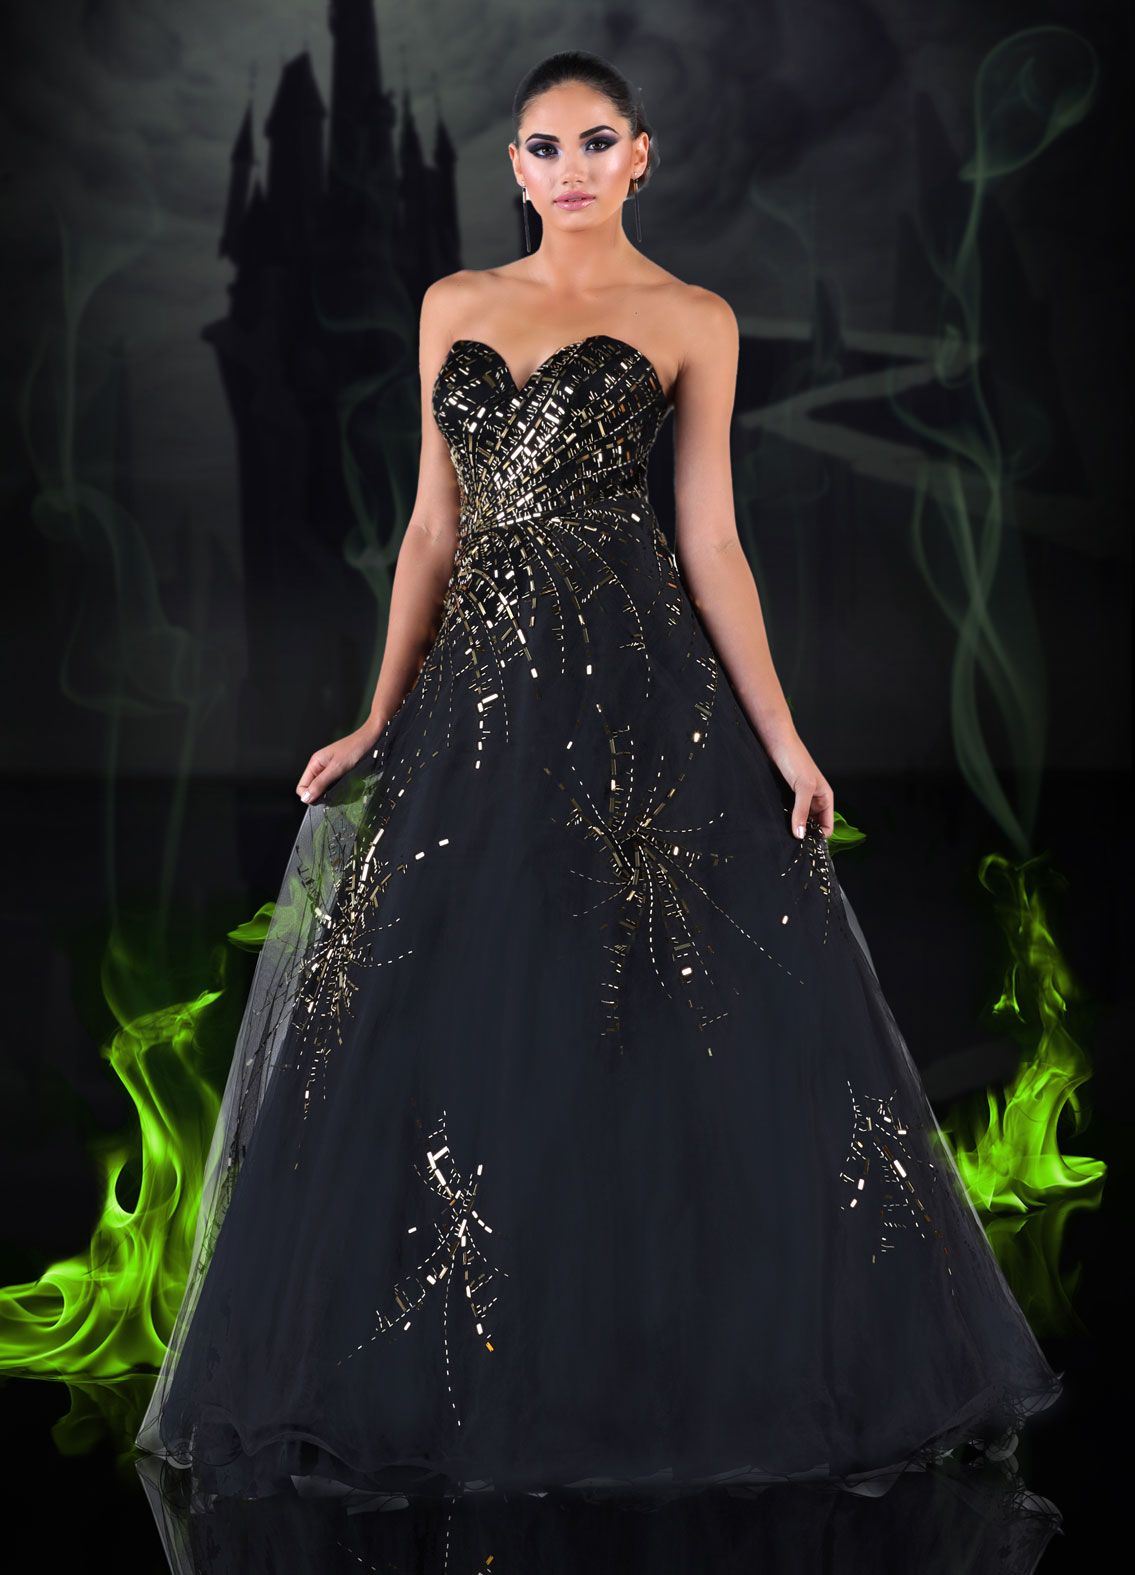 cf500dc0e51f Disney Forever Enchanted Prom Dresses | lets play dress up | Prom ...